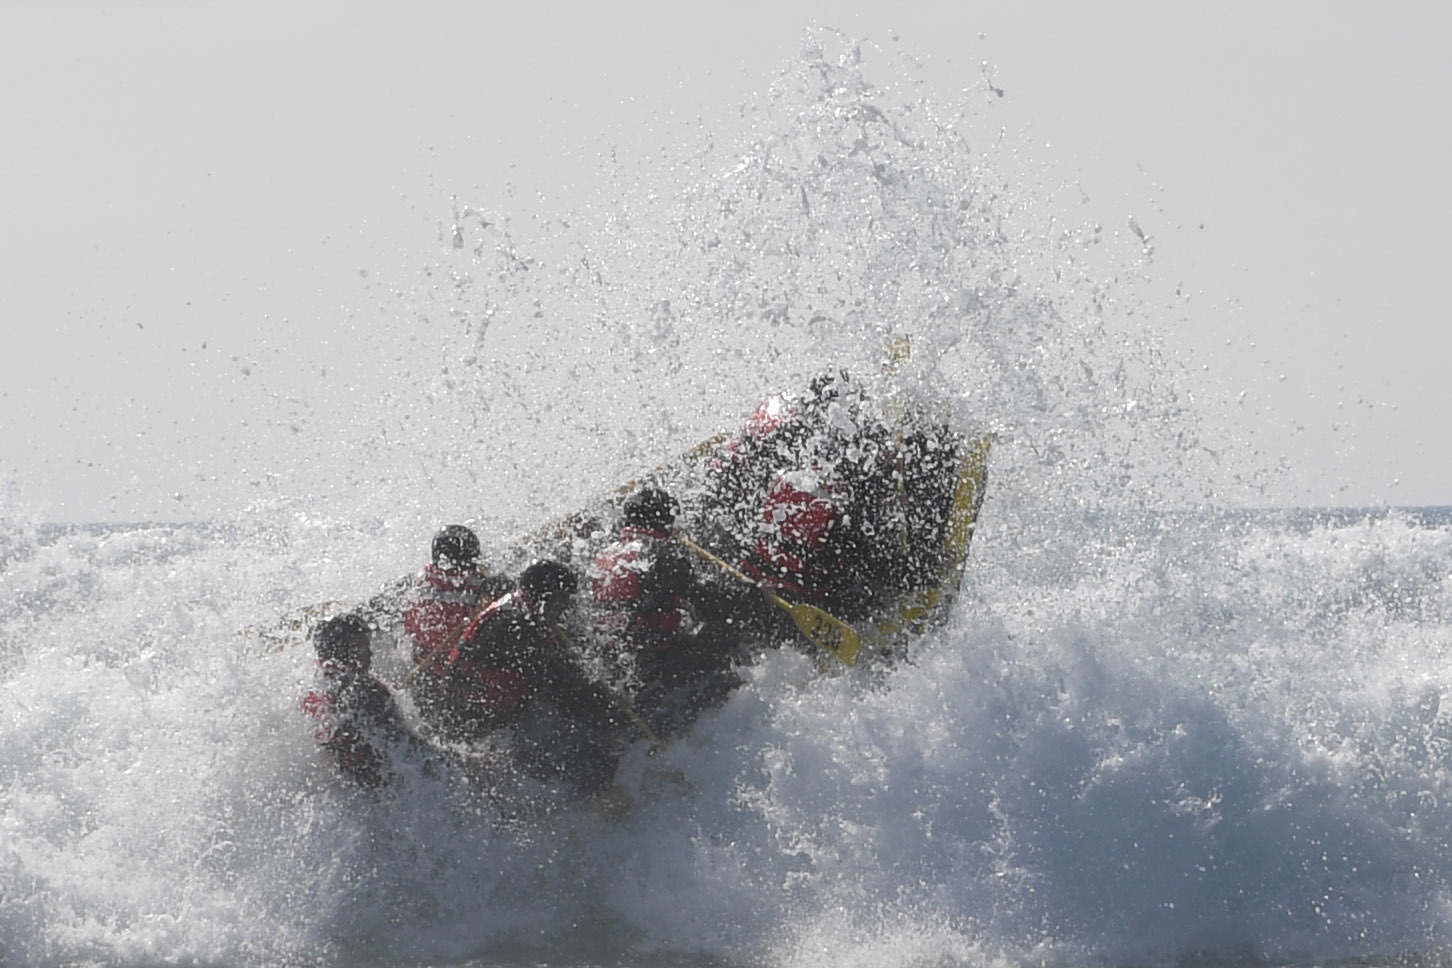 Basic Underwater Demolition/SEAL students participate in Surf Passage at Naval Amphibious Base Coronado. Surf Passage is one of many physically demanding evolutions that are a part of the first phase of SEAL training. (Mass Communication Specialist 1st Class Lynn F. Andrews/Navy)